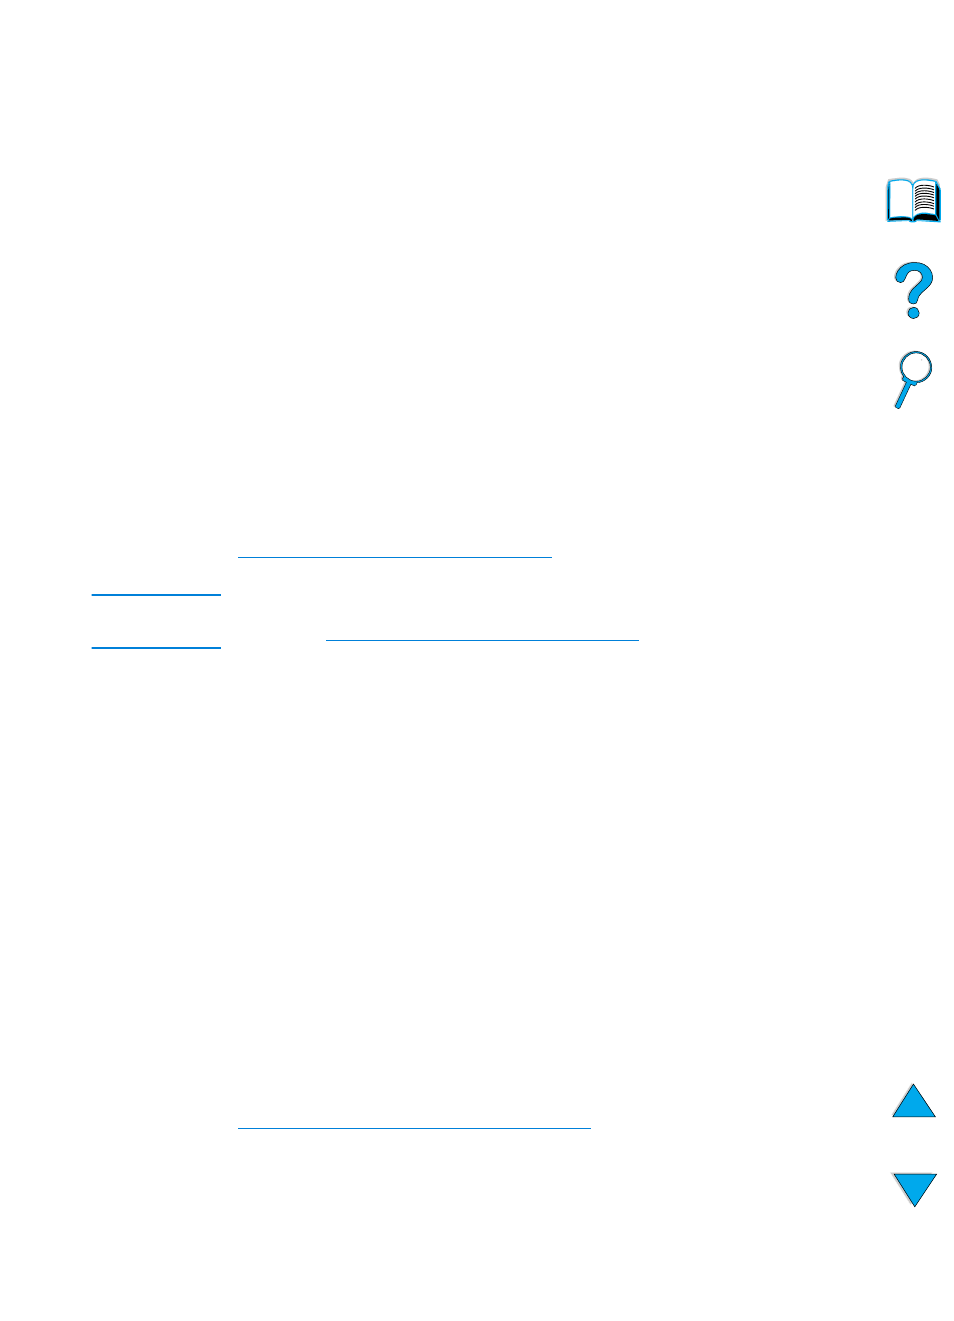 Software for networks, Overview, Hp web jetadmin | HP 4100TN